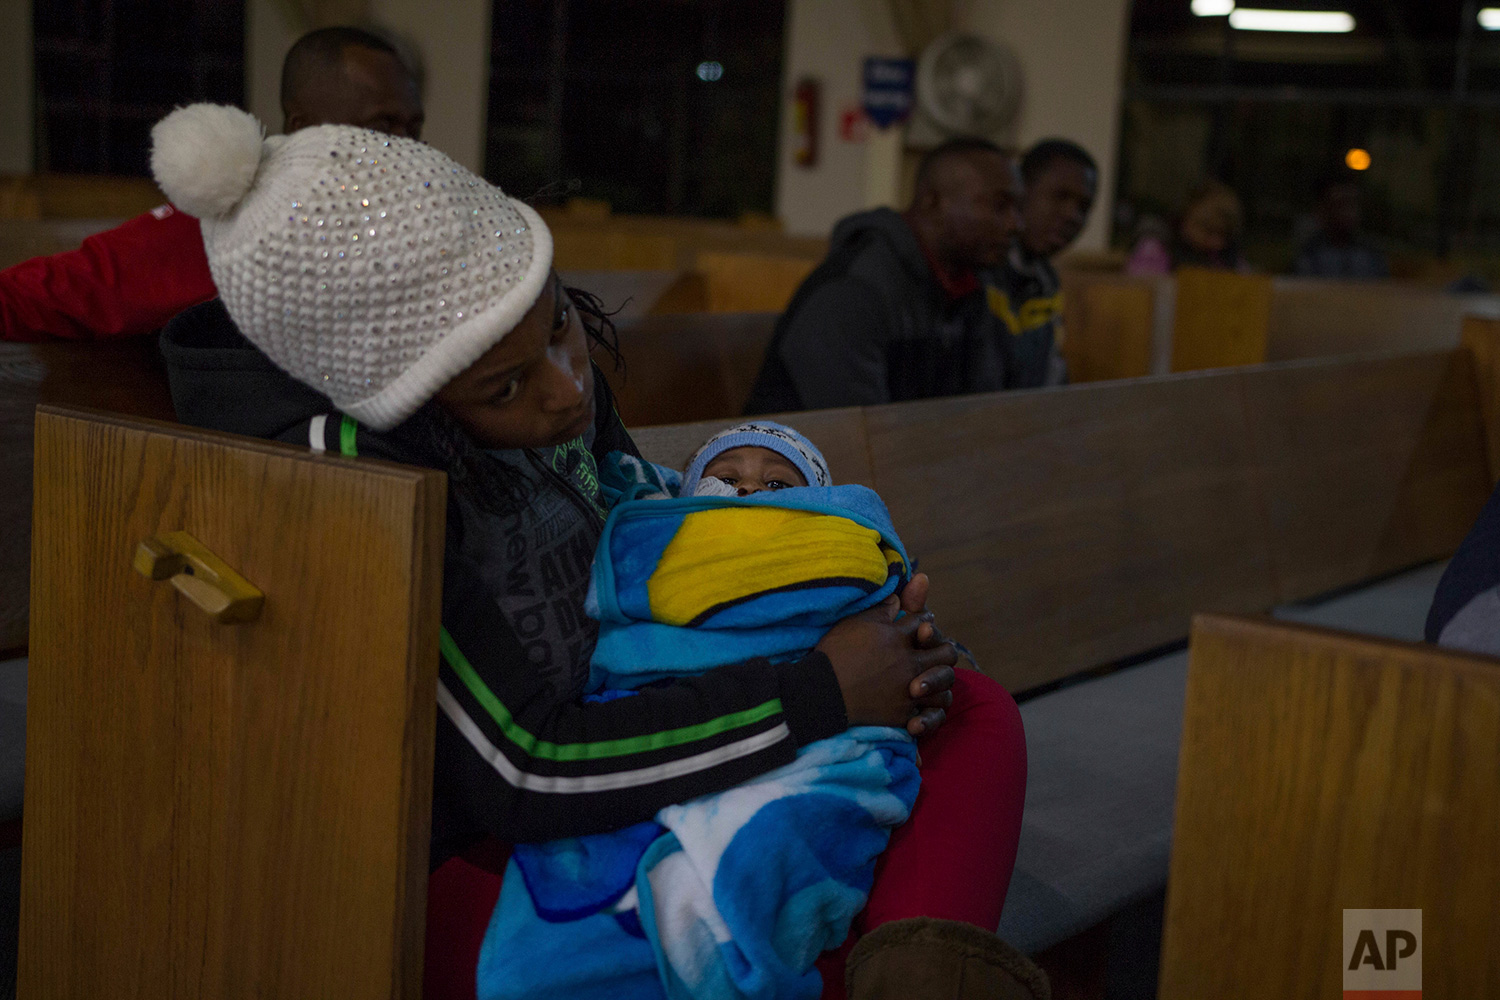 A woman holds her baby during a service at The First Baptist Church of Tijuana in Mexico, Feb. 26, 2018.The church is located in downtown Tijuana and forms an important part of Haitian community life in the city. (AP Photo/Emilio Espejel)